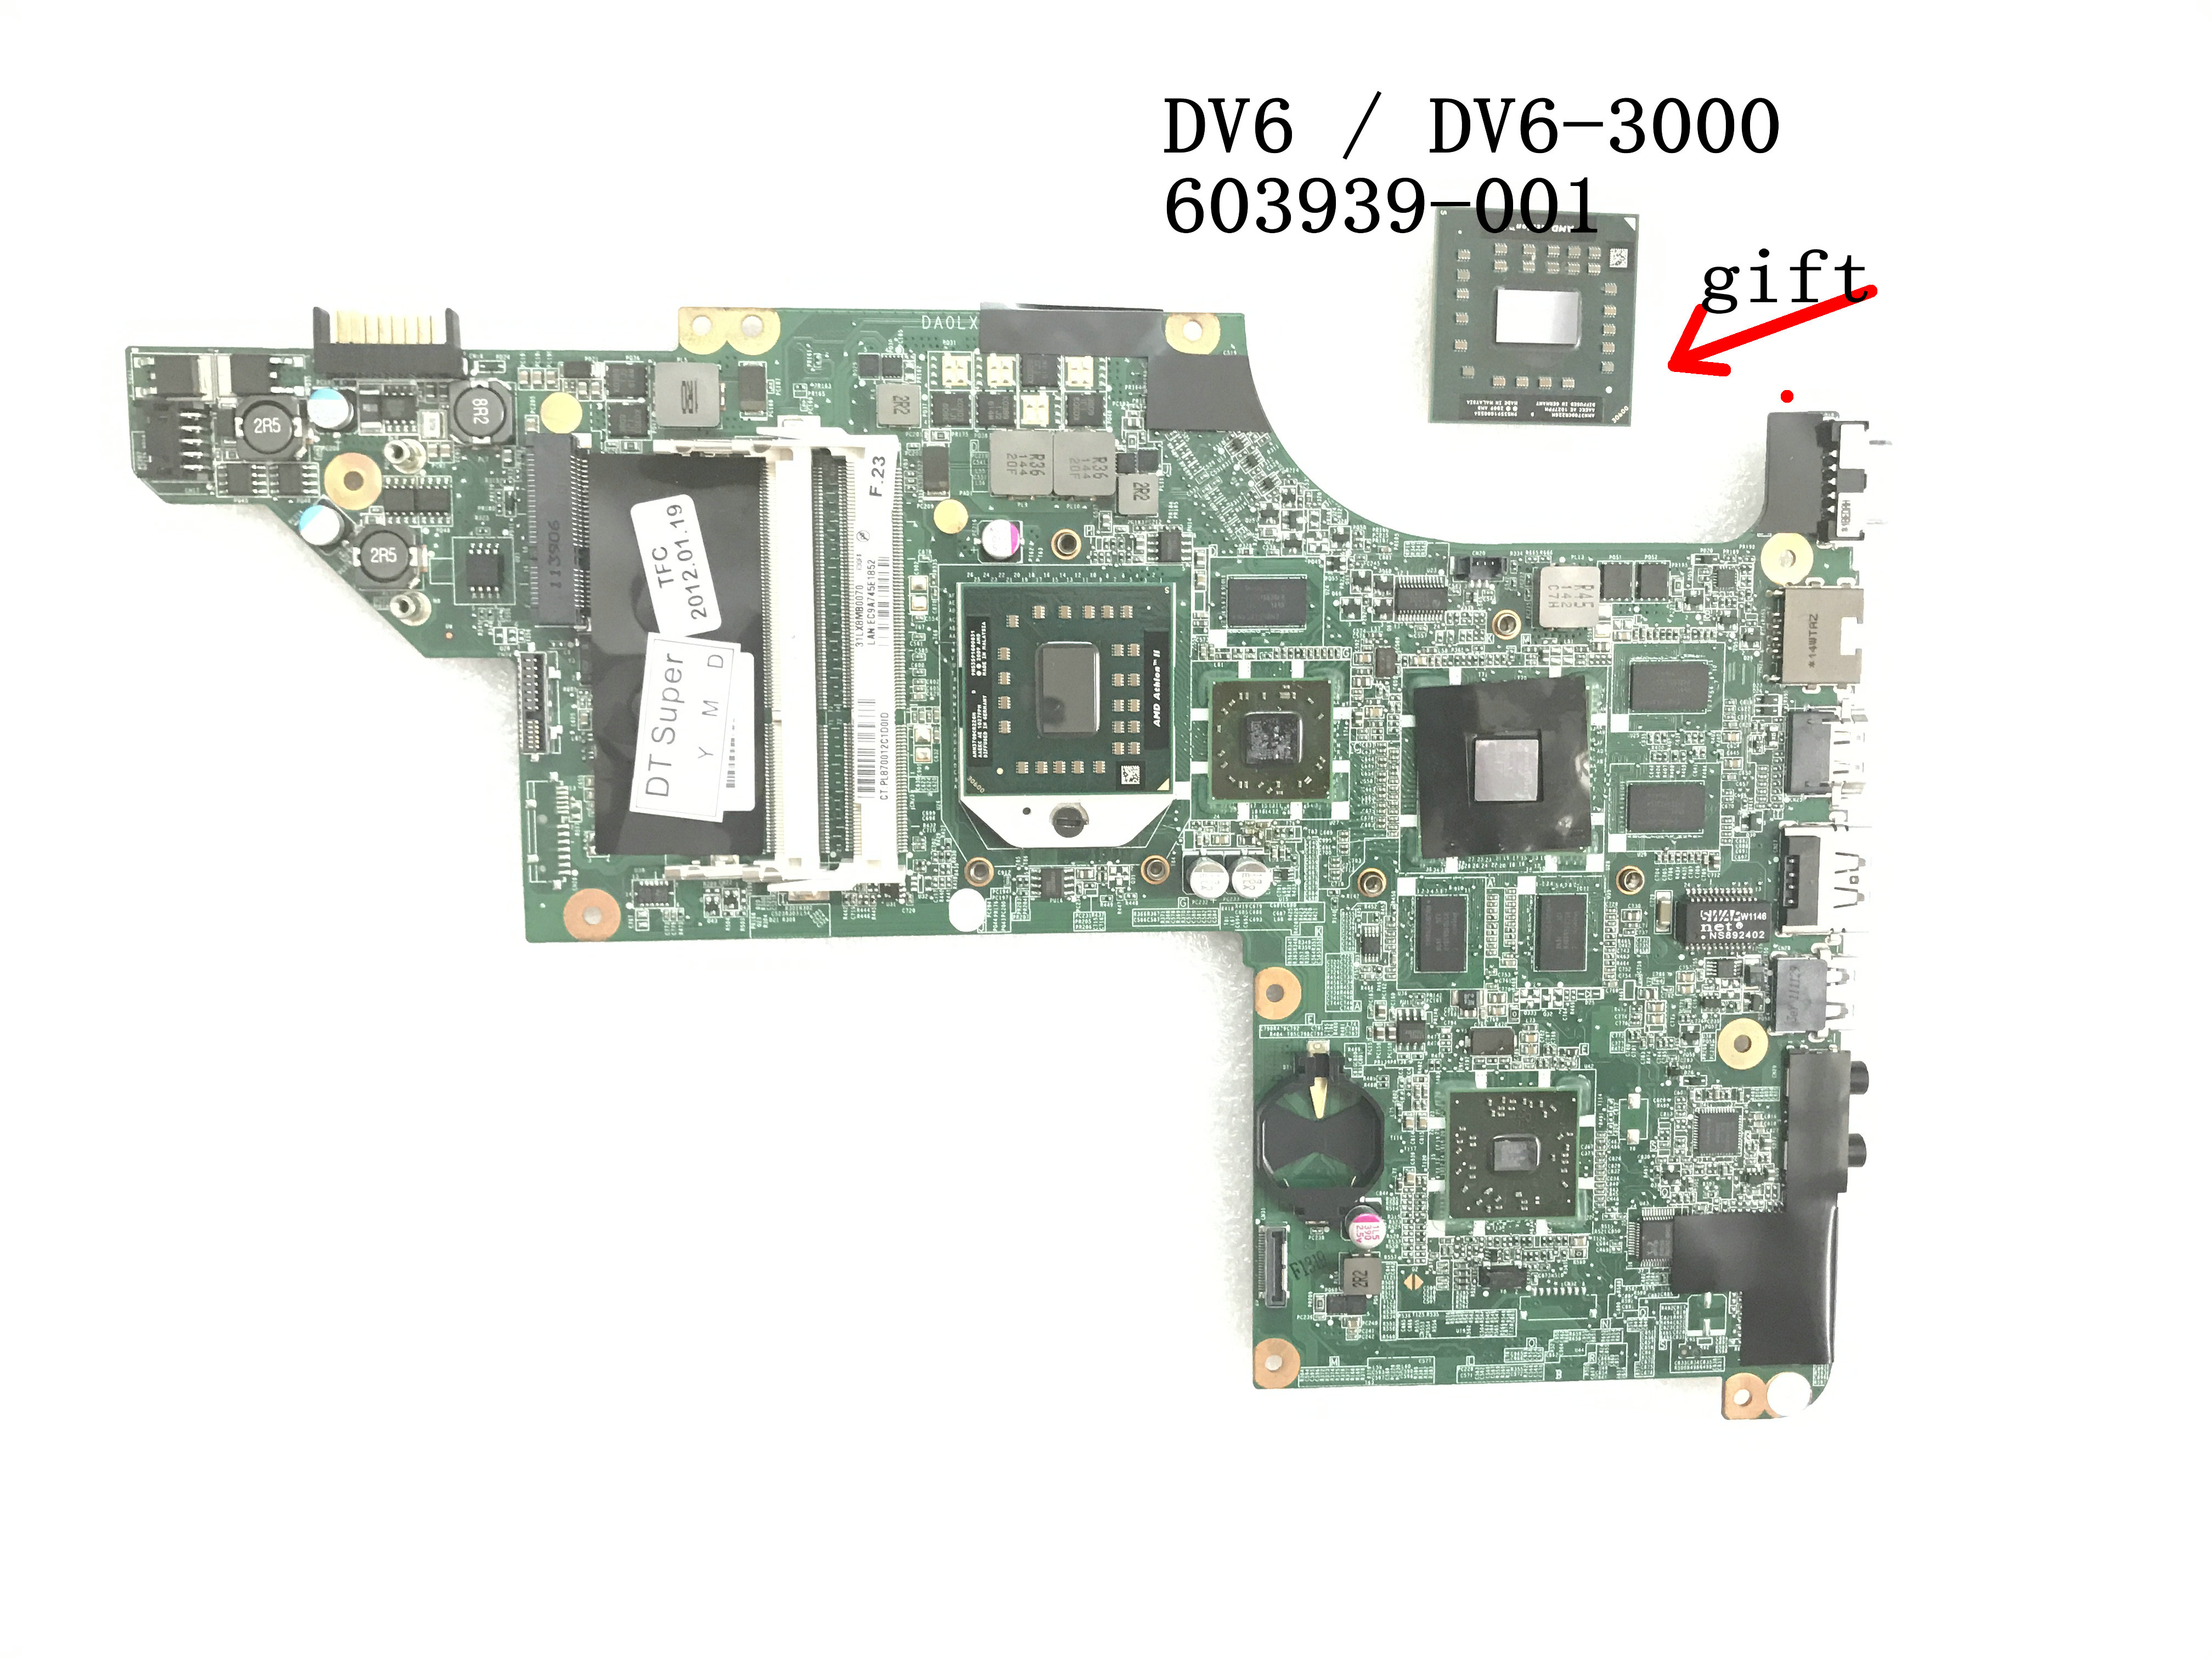 BiNFUL STOCK 100% 603939-001 DA0LX8MB6D1 FOR HP PAVILION DV6 DV6-3000 VIDEO CARD